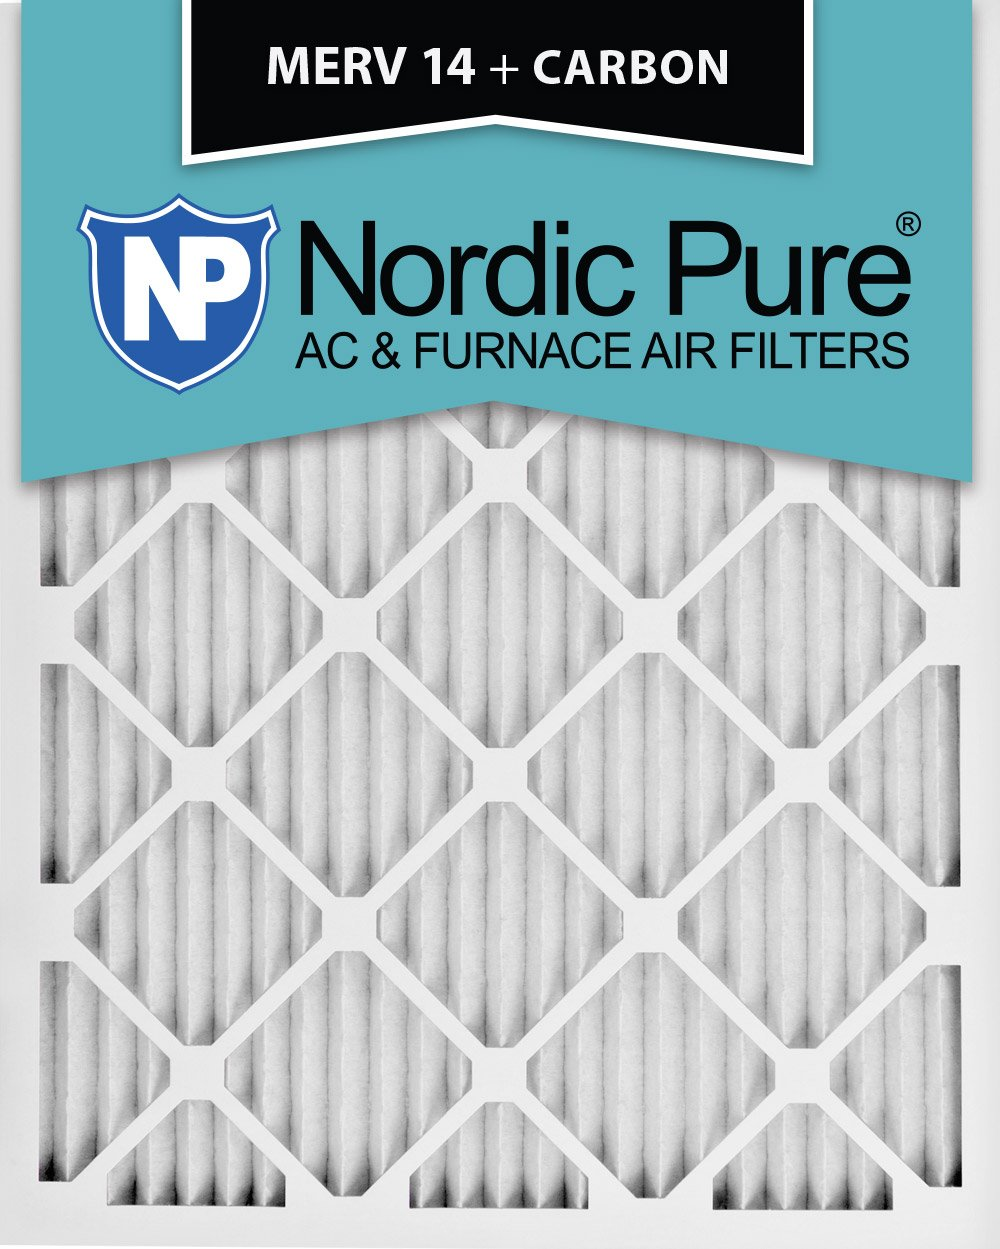 Nordic Pure 16x24x1 MERV 14 Plus Carbon Pleated AC Furnace Air Filters 16x24x1M14+C-2 2 Piece